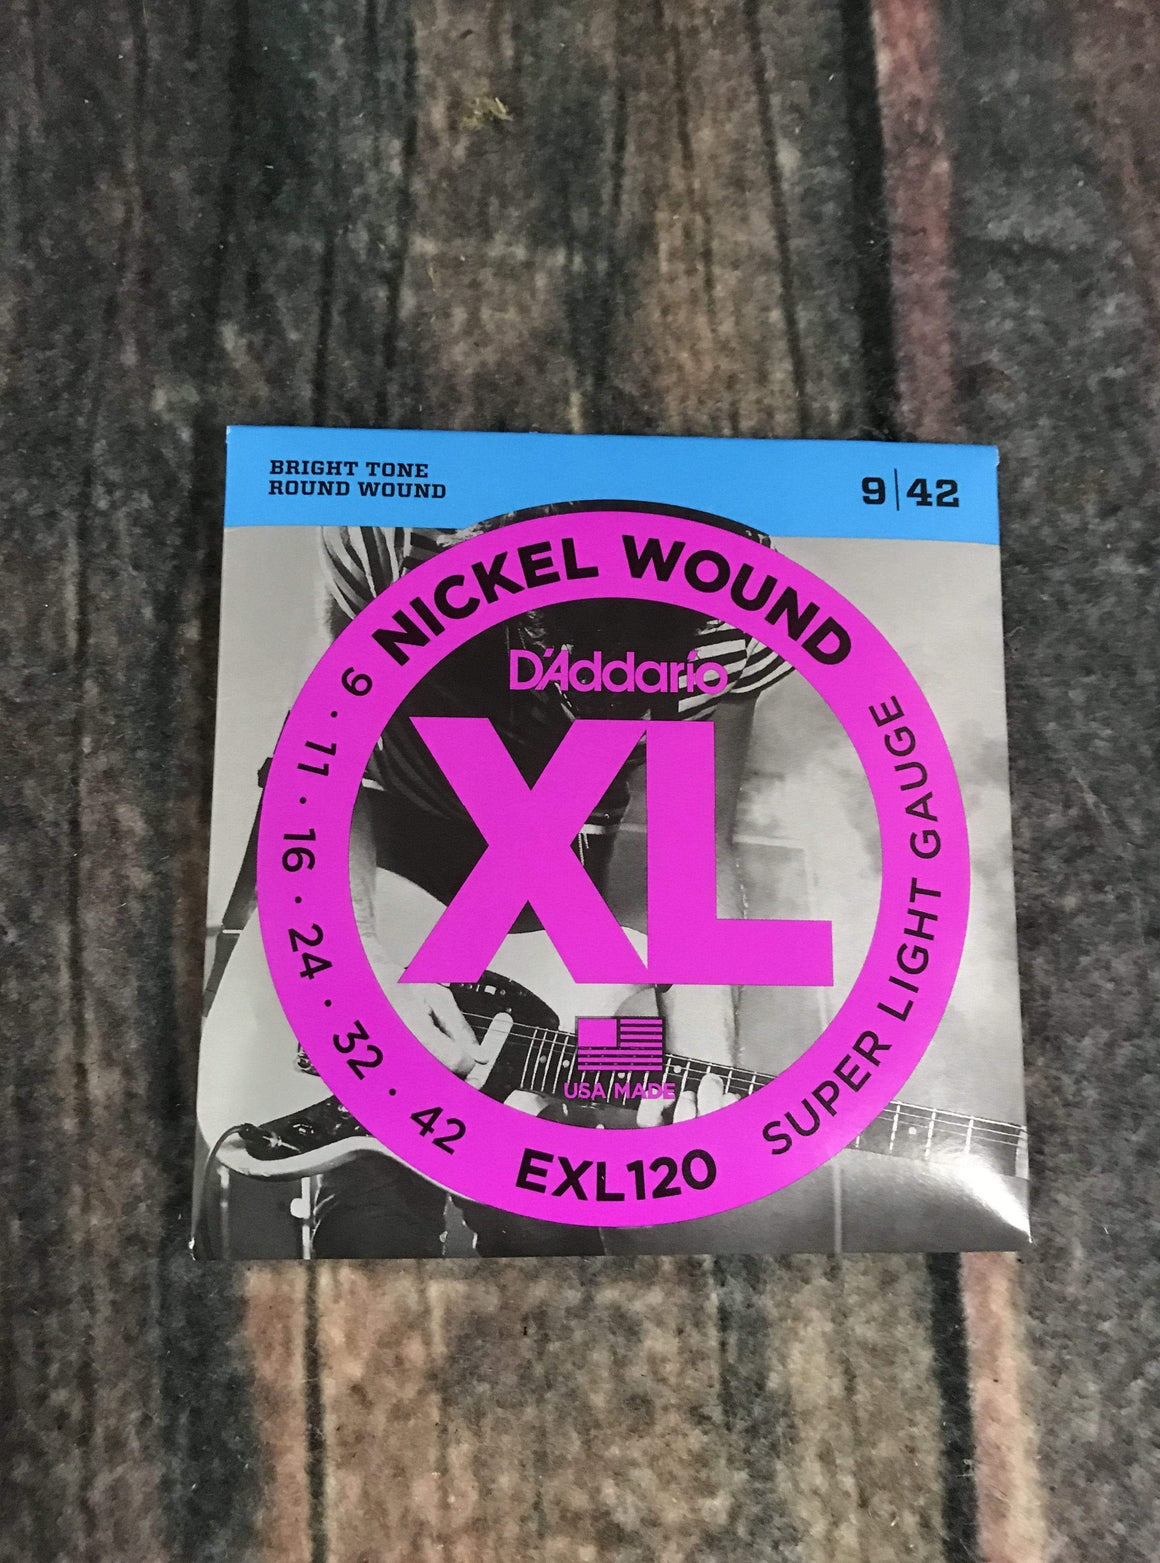 D'Addario Electric Guitar Strings D'Addario EXL 120 Super Light 9-42 Electric Guitar Strings